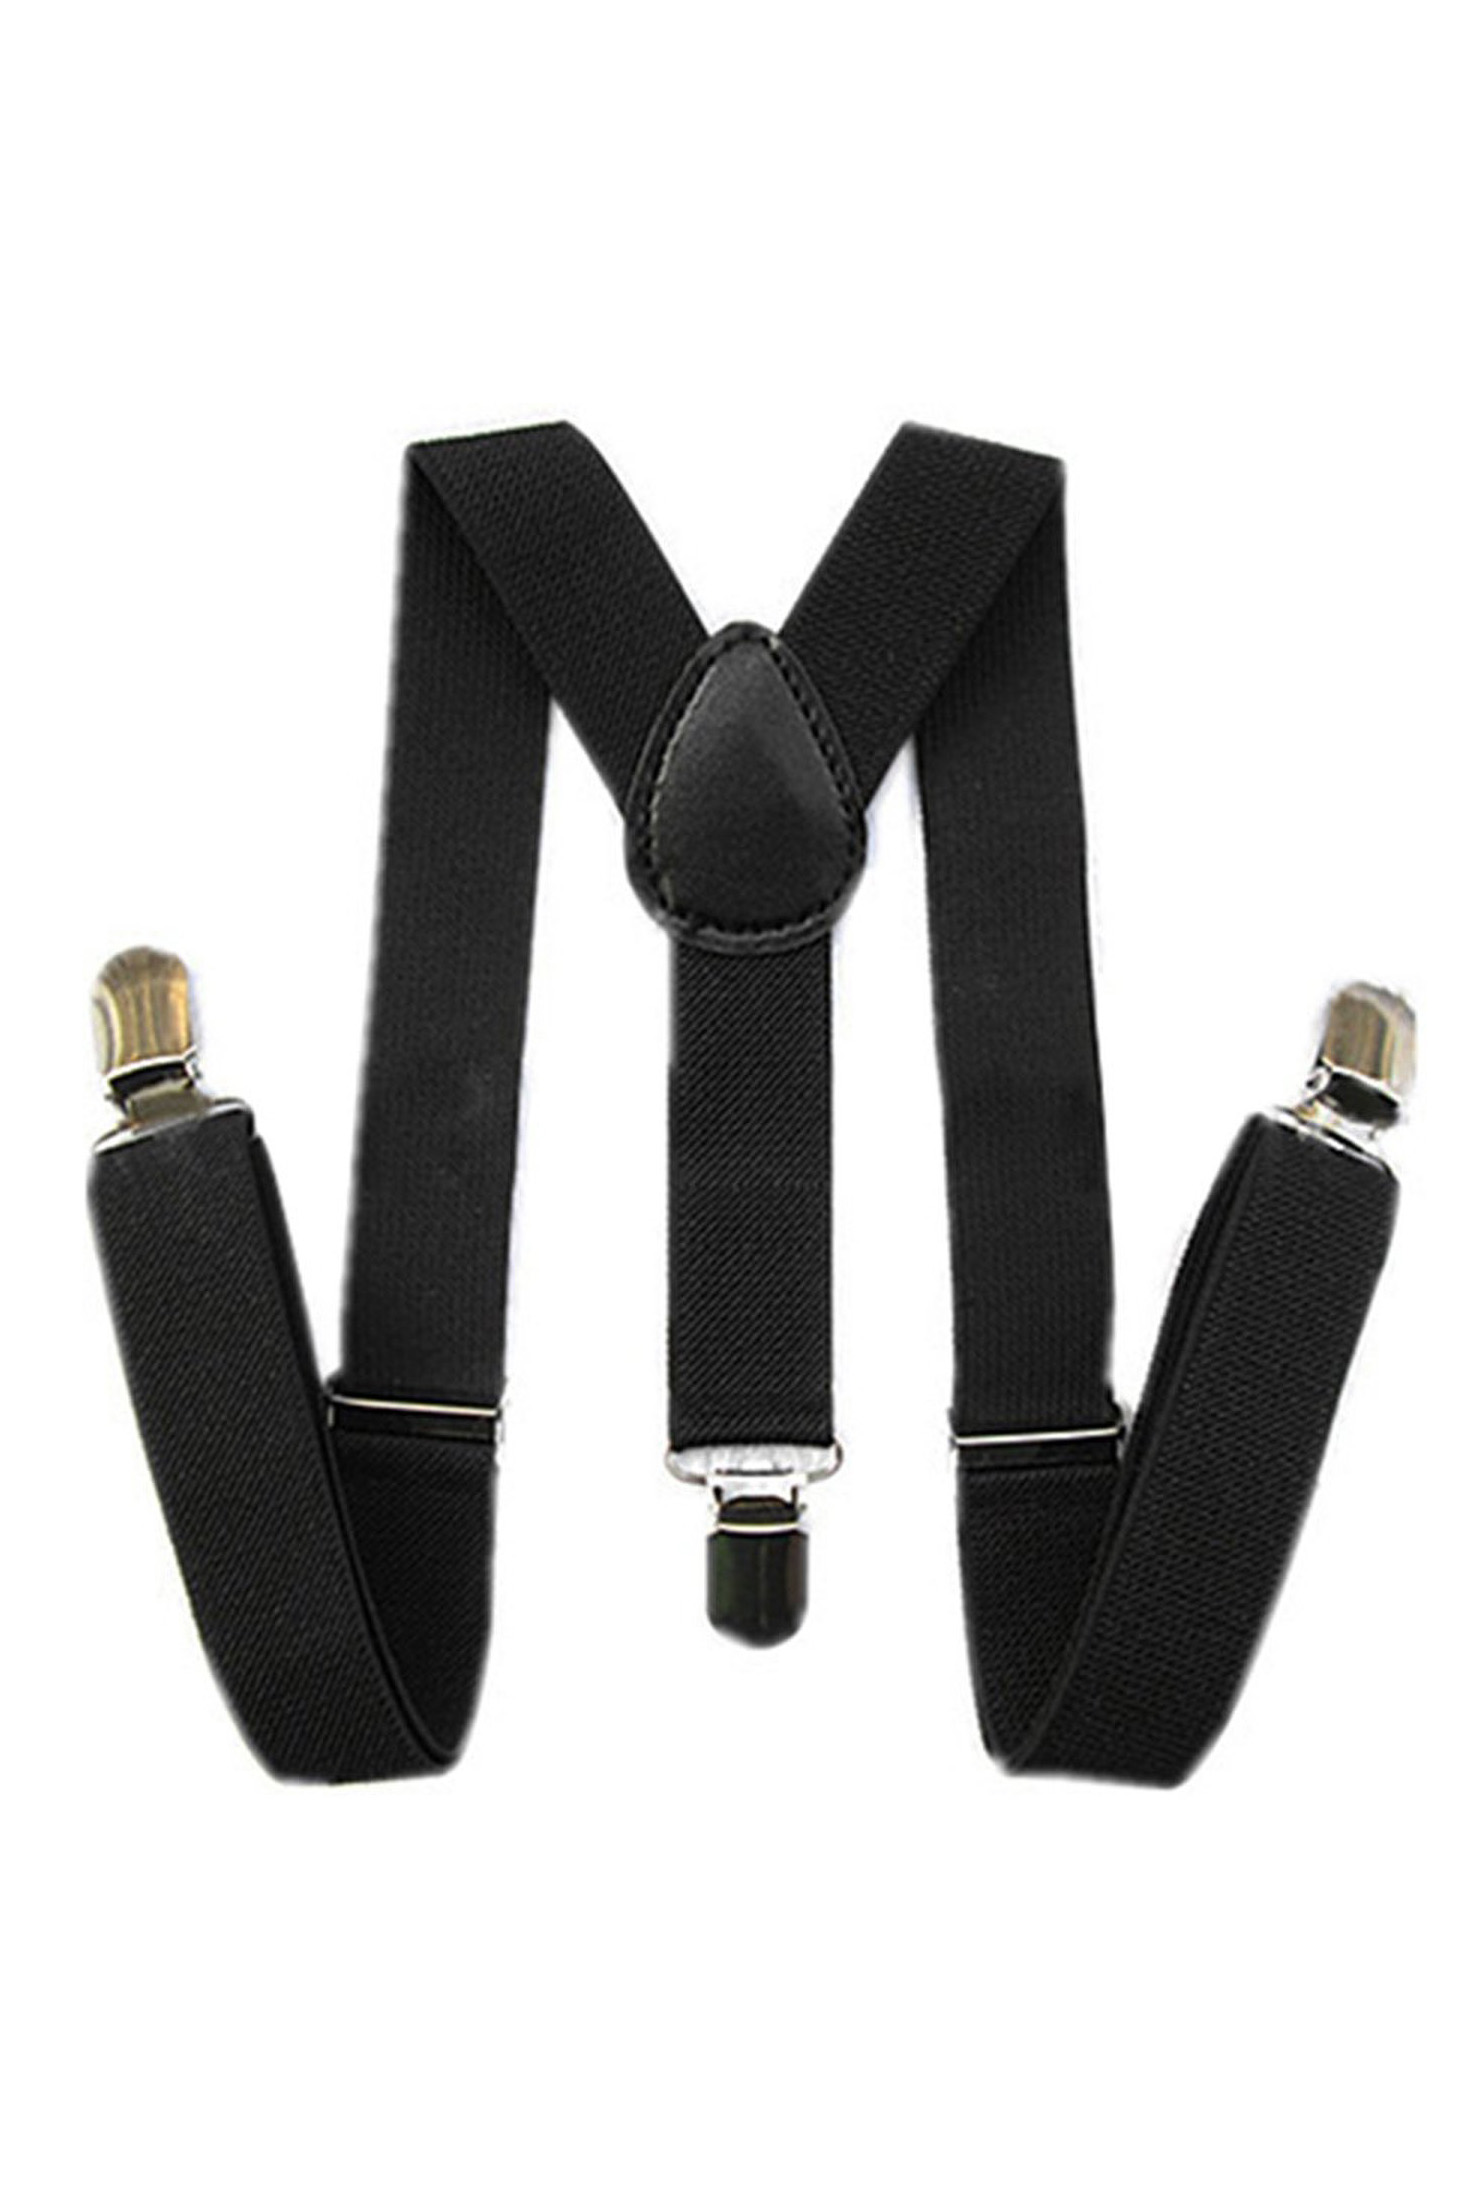 Kids Boys Girls Y-Back Suspender Elastic Adjustable Clip-On Braces Black